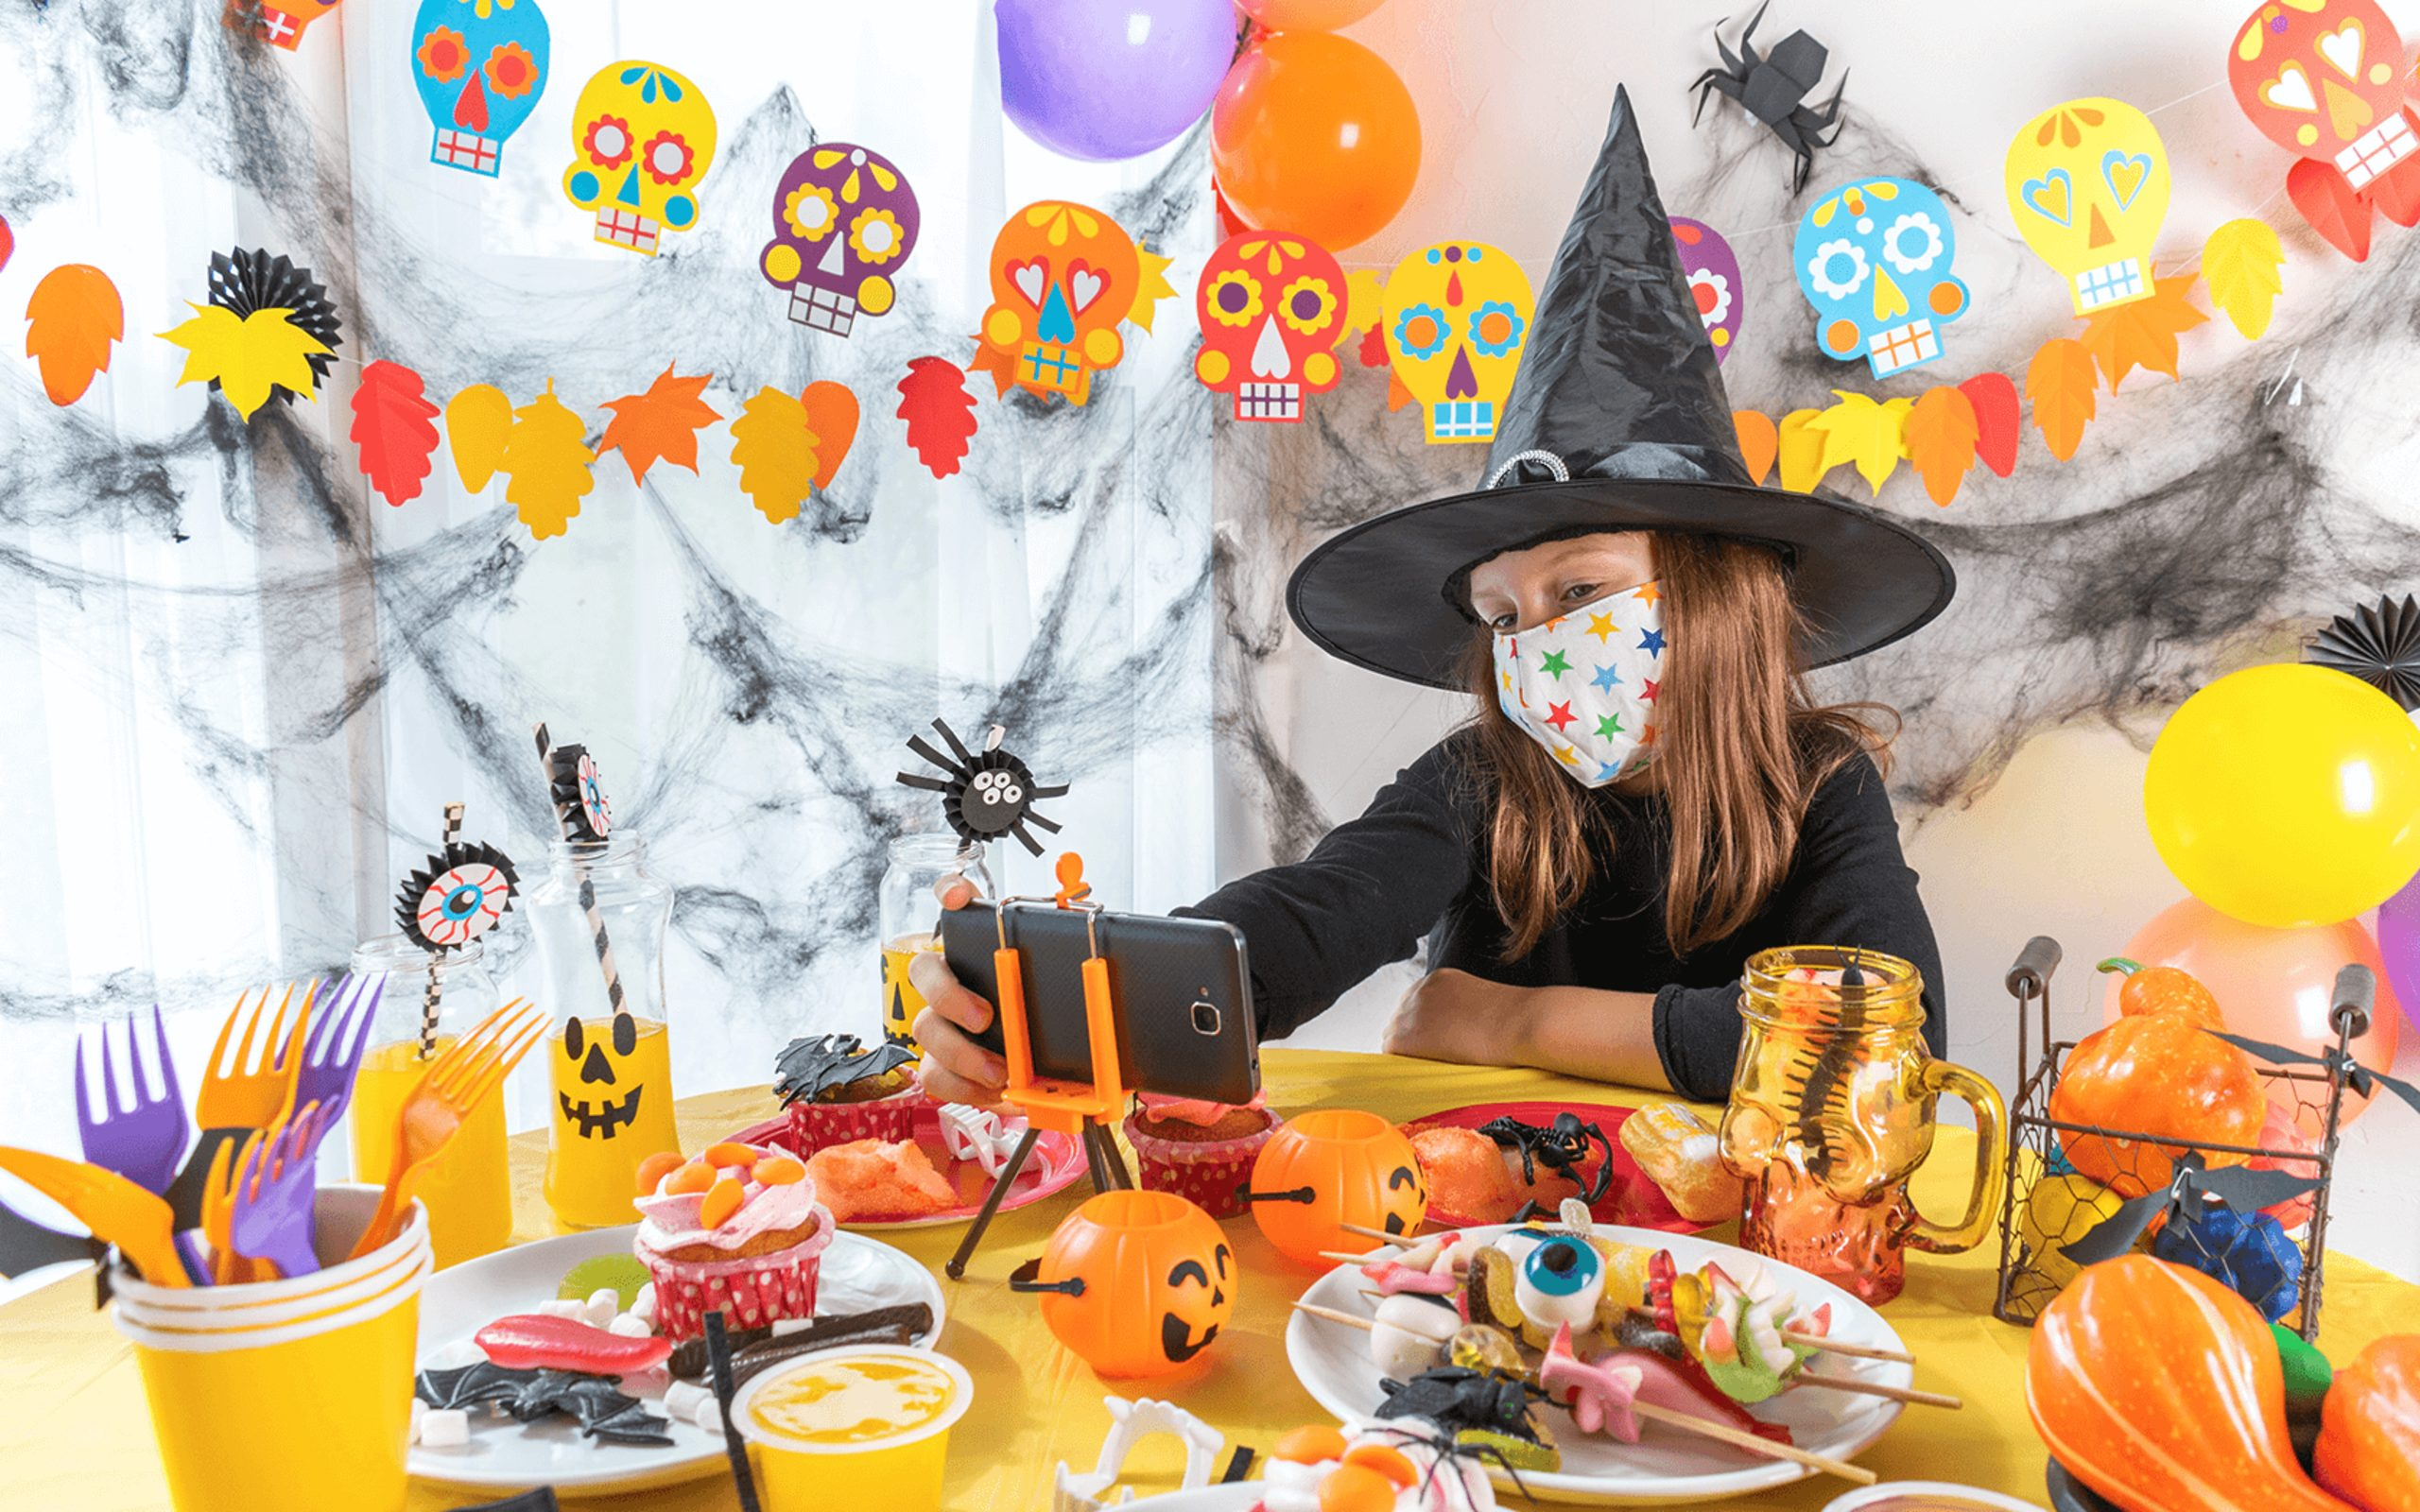 10 Spooky-but-safe Ways to Celebrate Halloween During COVID